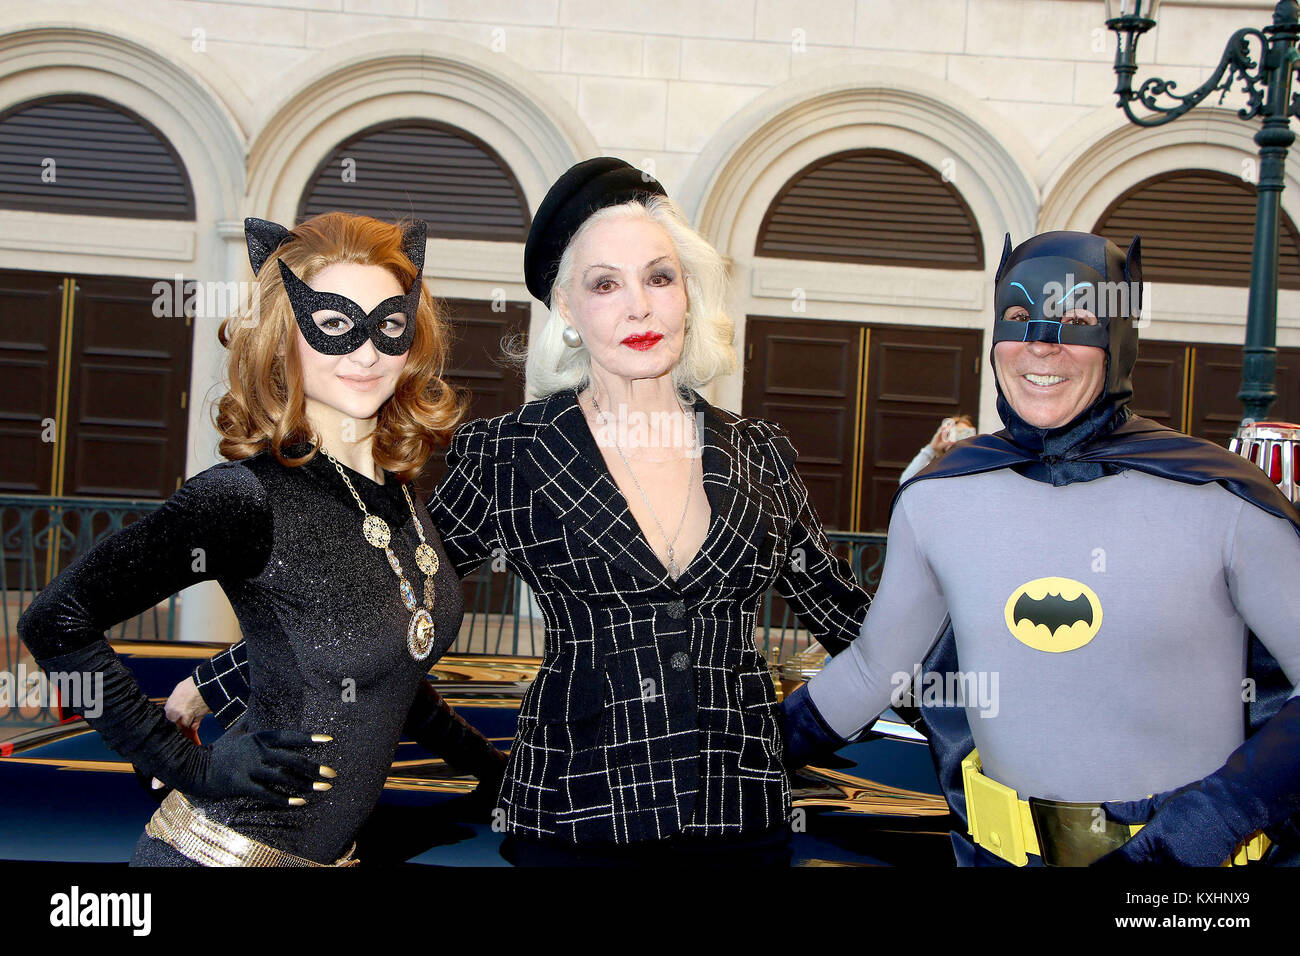 The Animazing Gallery celebrates its grand opening with special host the original Catwoman Julie Newmar at the Animazing Gallery Grand Canal Shoppes ...  sc 1 st  Alamy & The Animazing Gallery celebrates its grand opening with special host ...